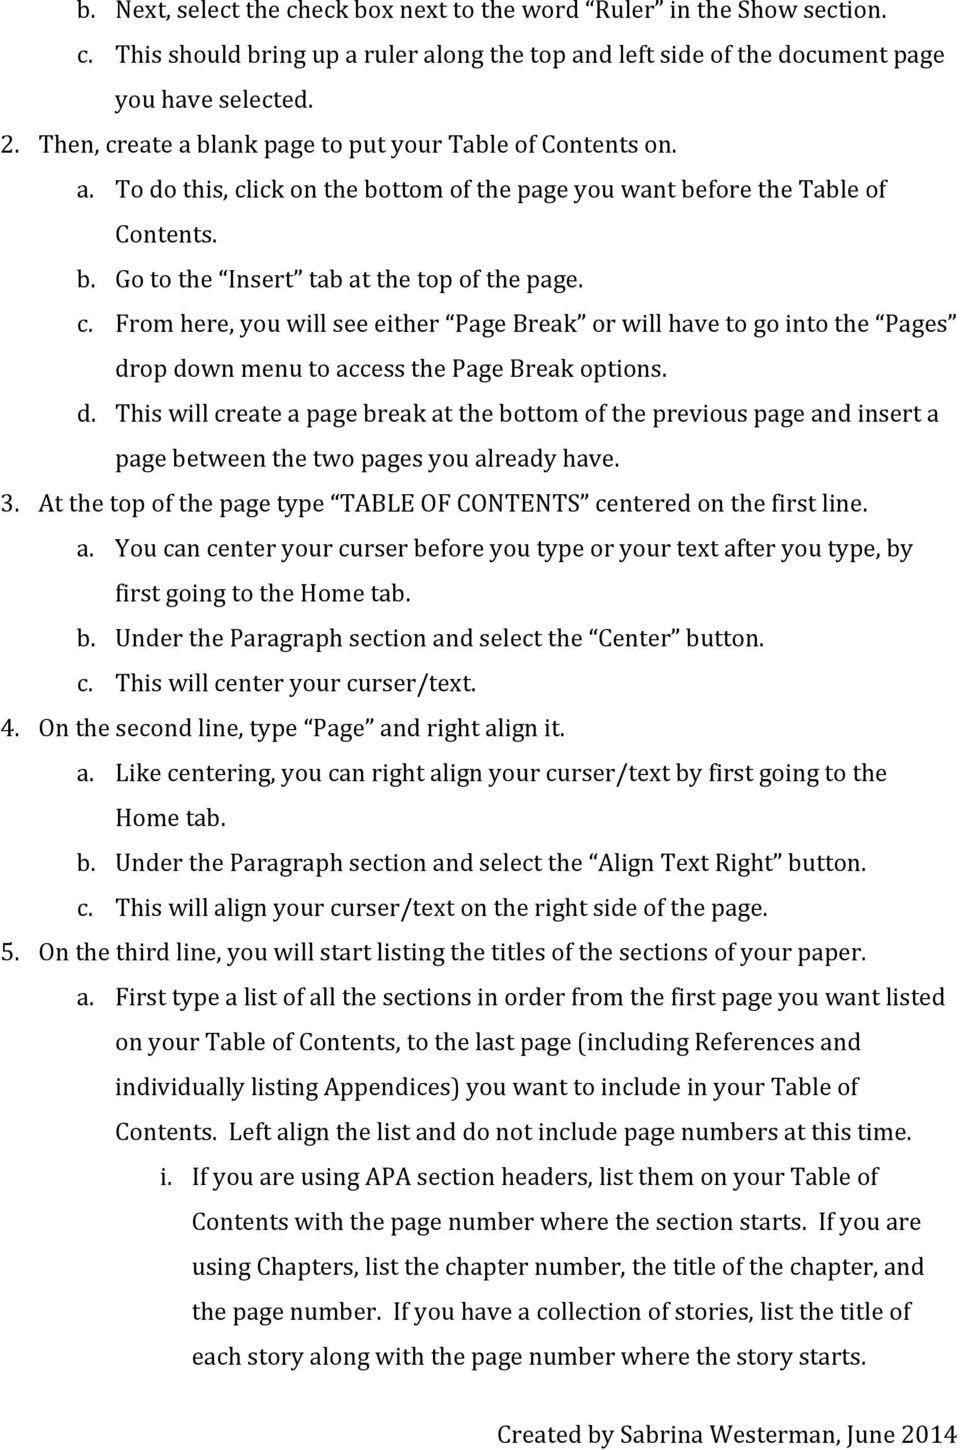 d. This will create a page break at the bottom of the previous page and insert a page between the two pages you already have. 3.